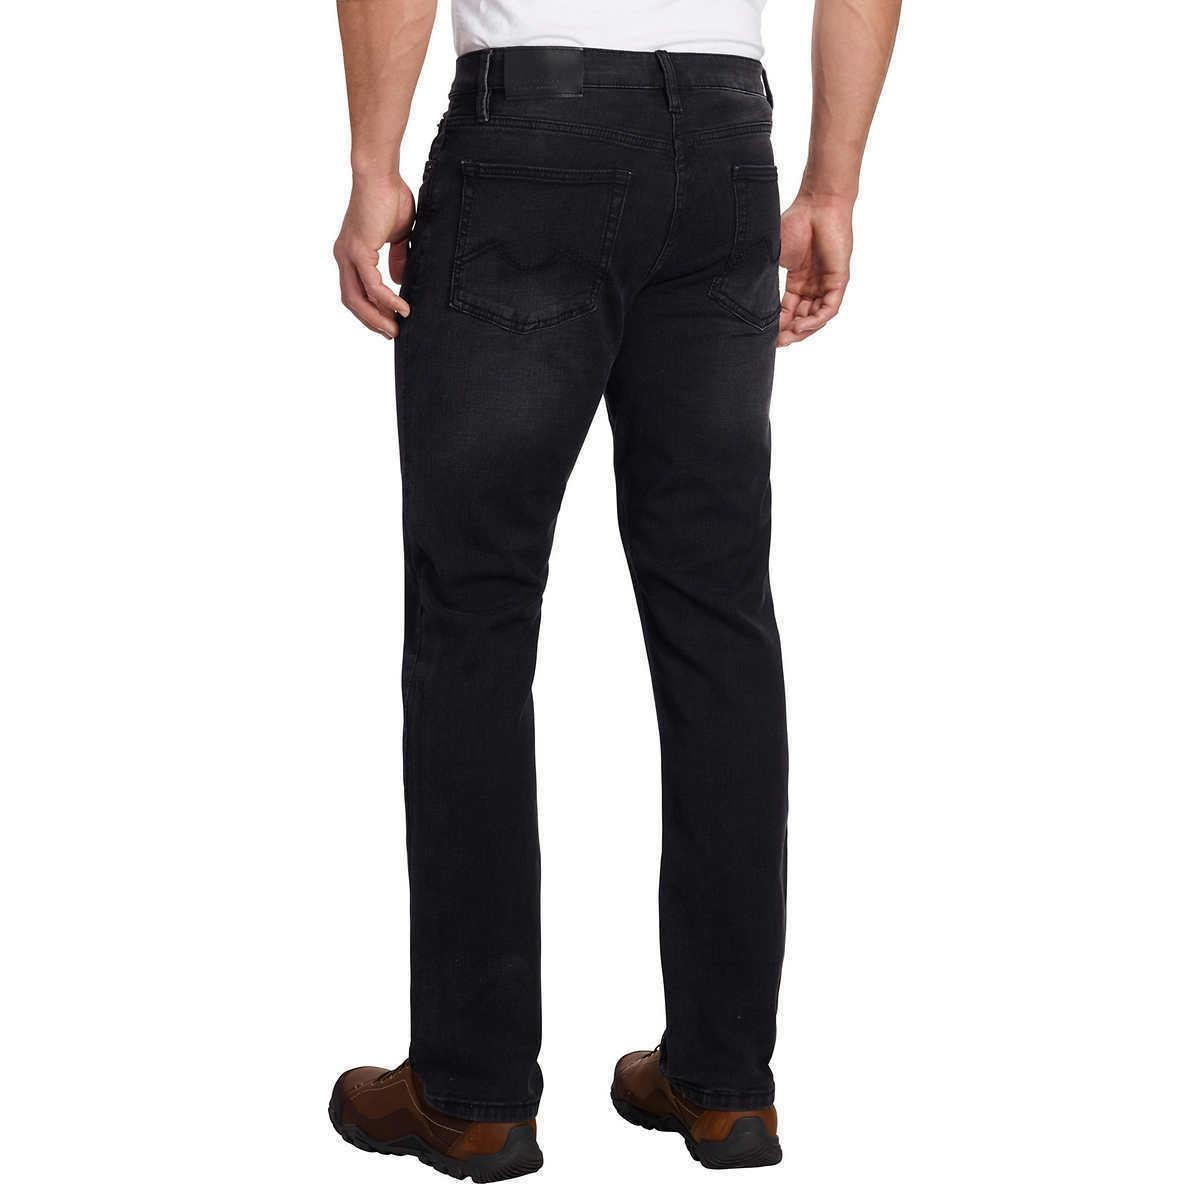 Urban Black Men's Relaxed Fit All